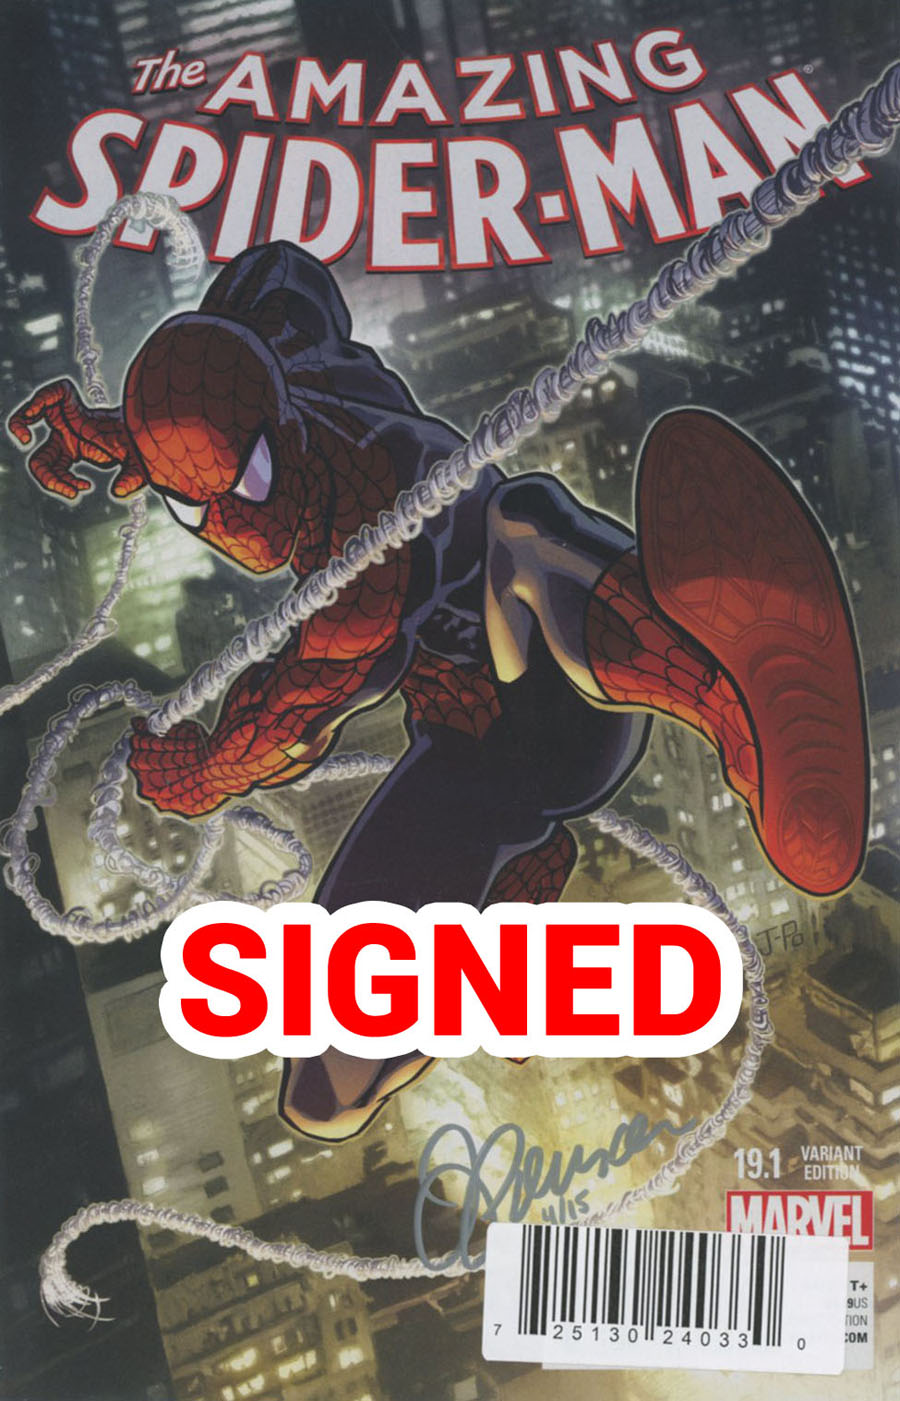 Amazing Spider-Man Vol 3 #19.1 Cover C DF Ultra-Limited Webslinger Silver Signature Series Signed By Justin Ponsor